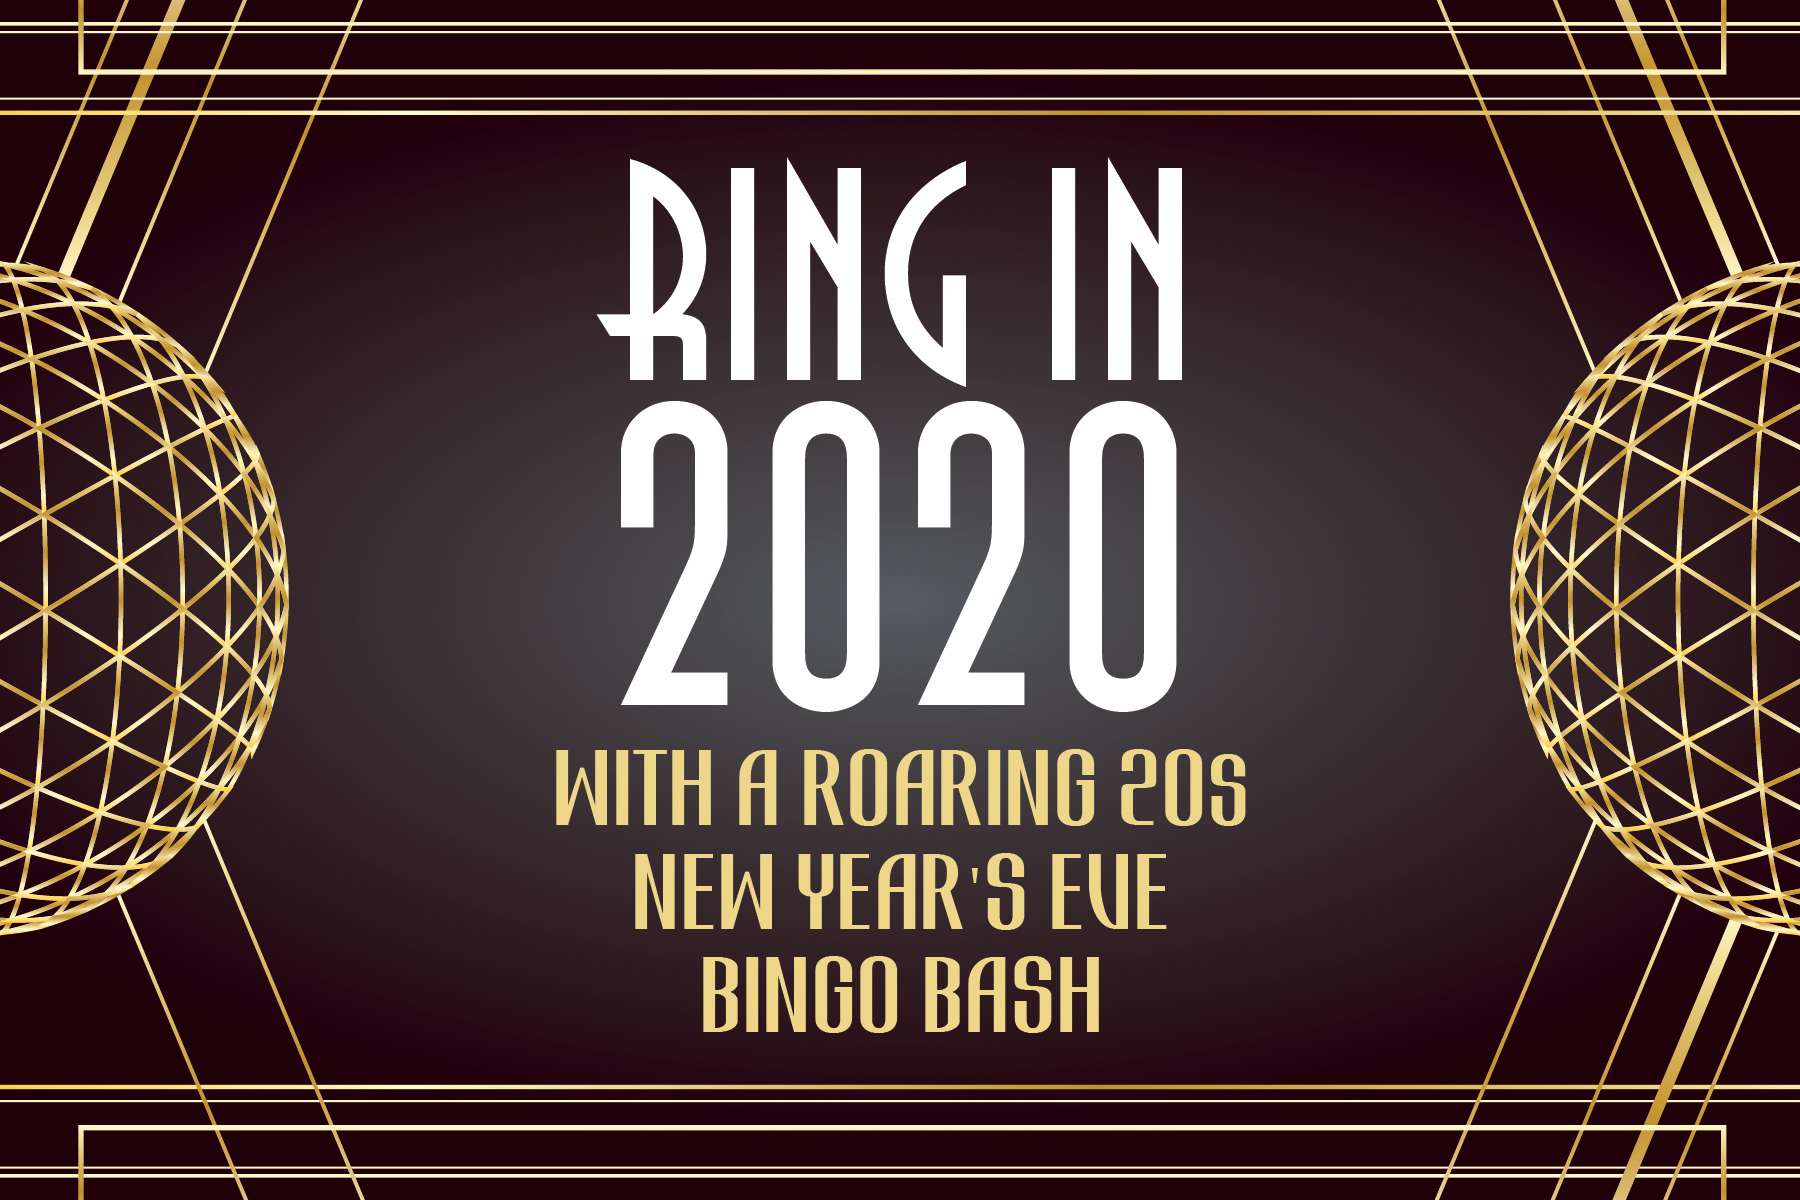 Turning Stone Intended For Turning Stone Bingo Calendar 2020